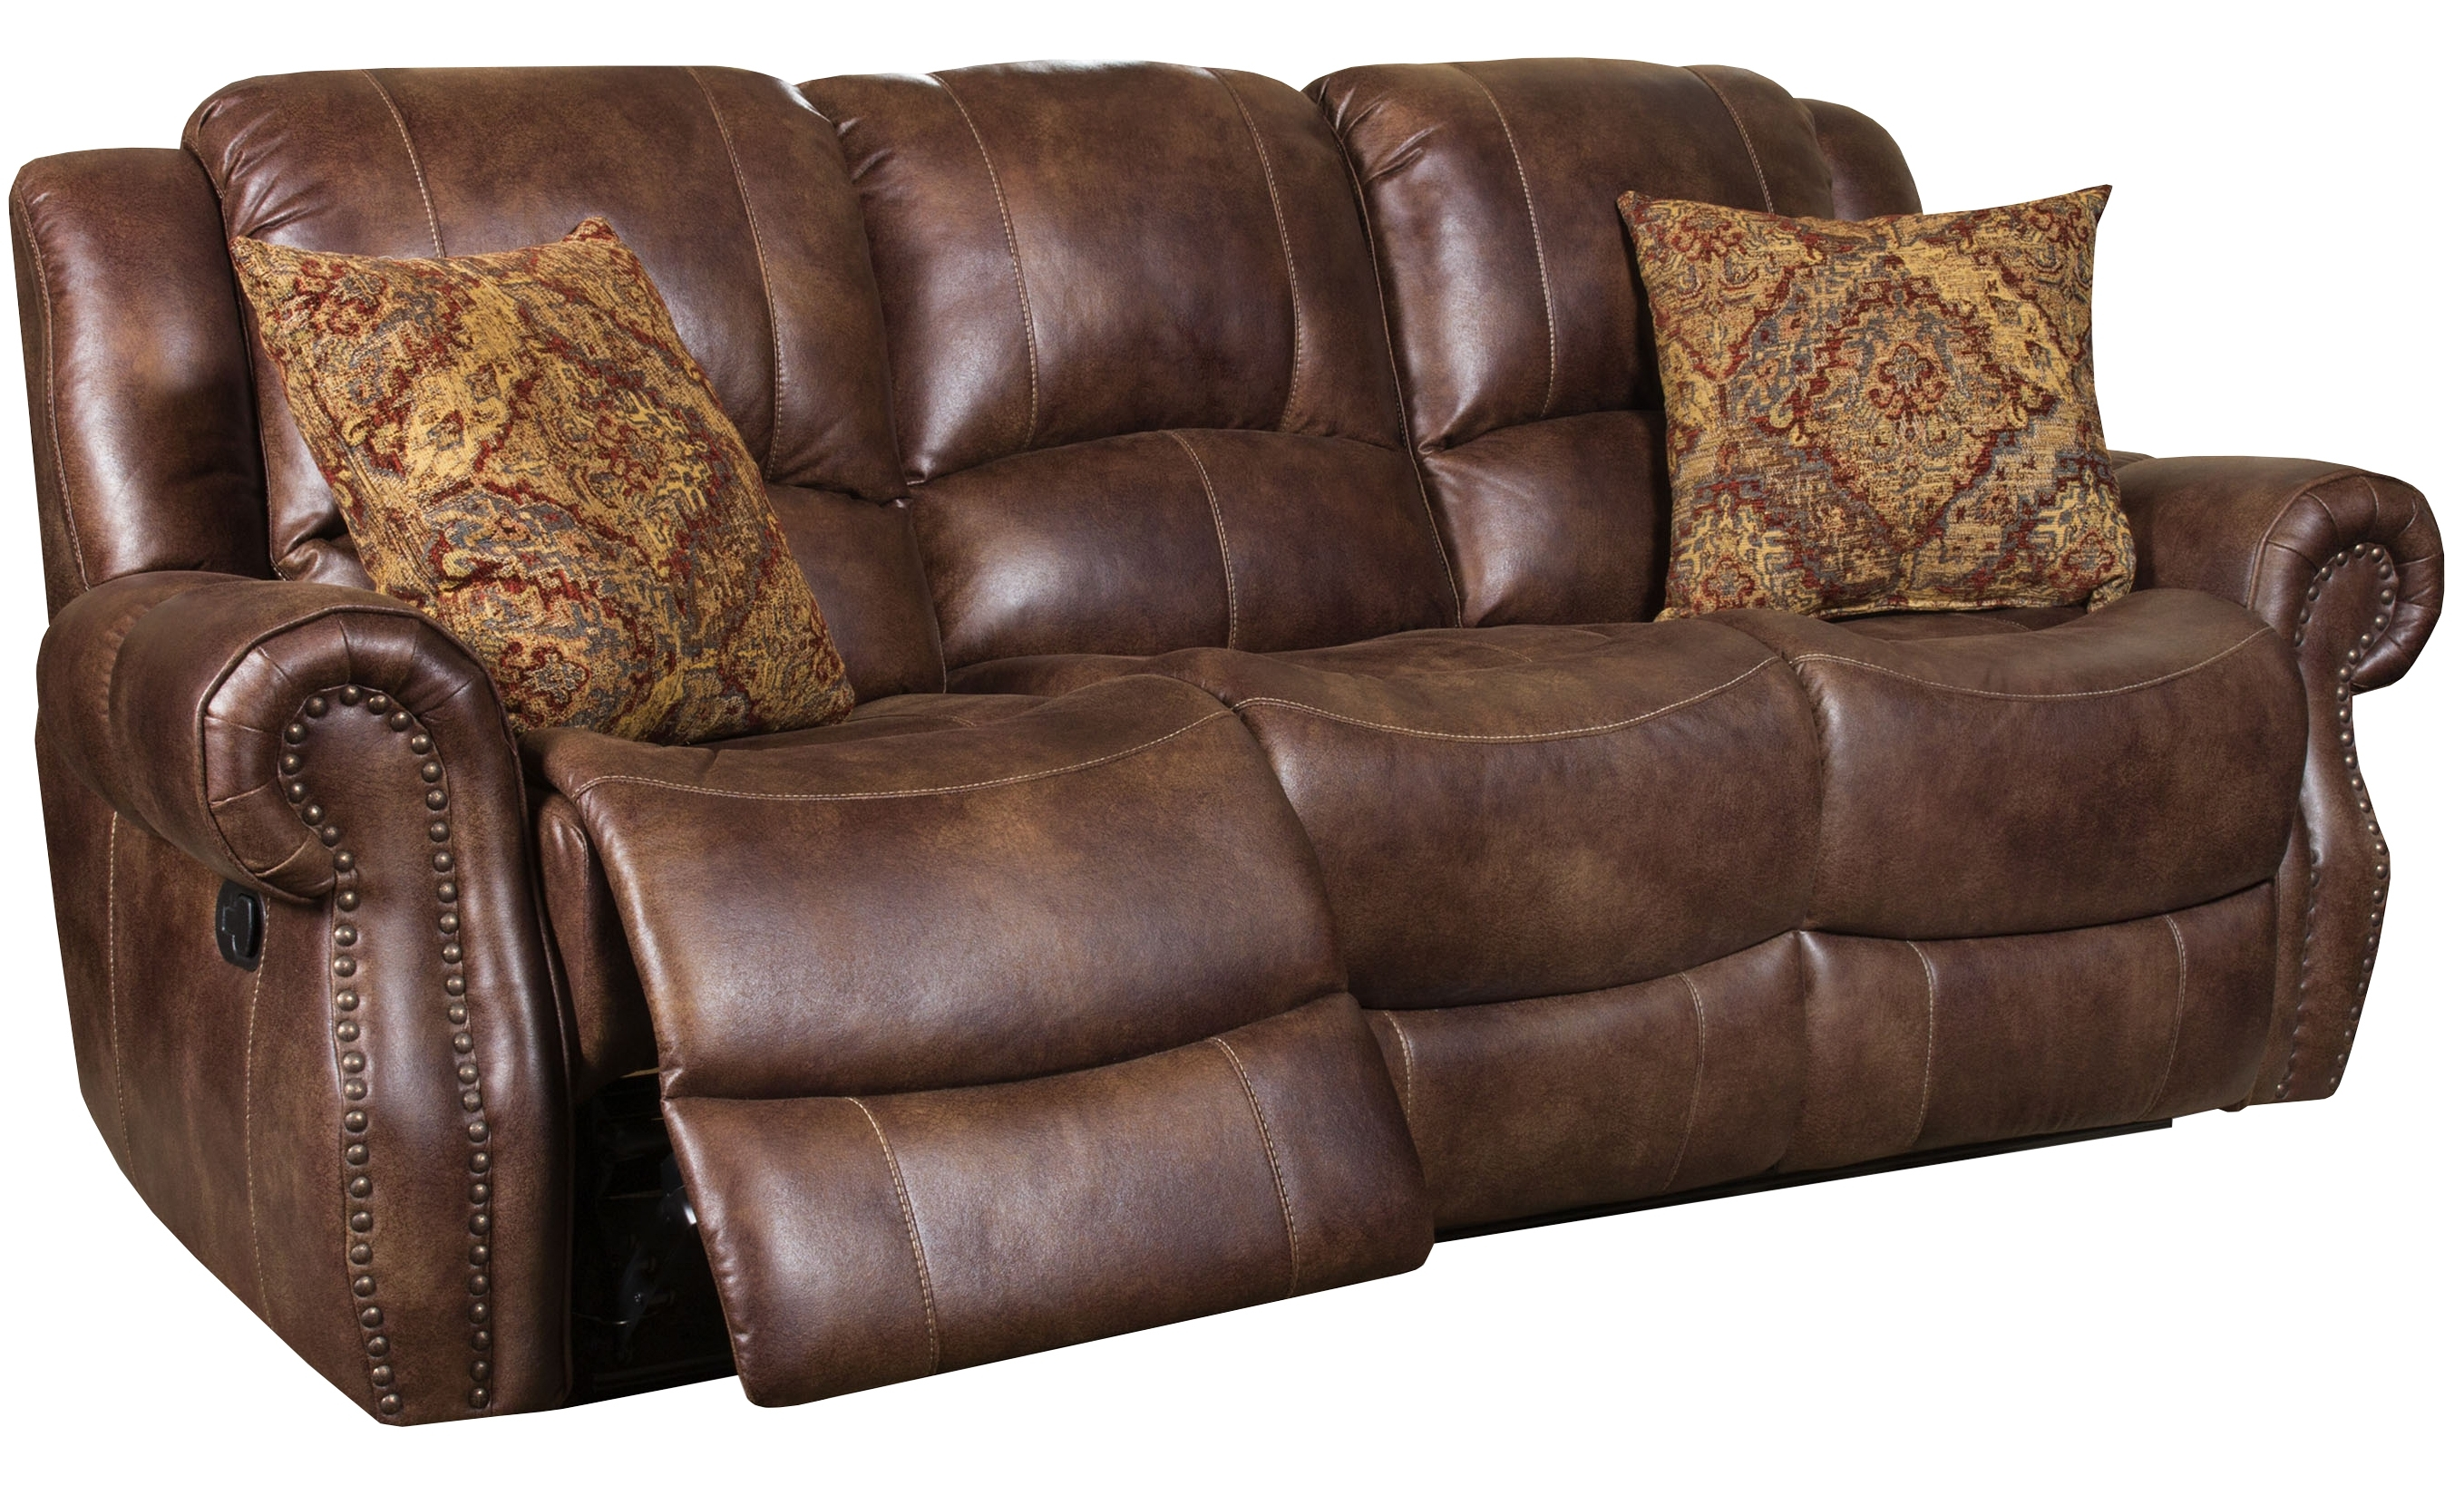 Waylon Collectioncorinthian with Waylon 3 Piece Power Reclining Sectionals (Image 24 of 30)